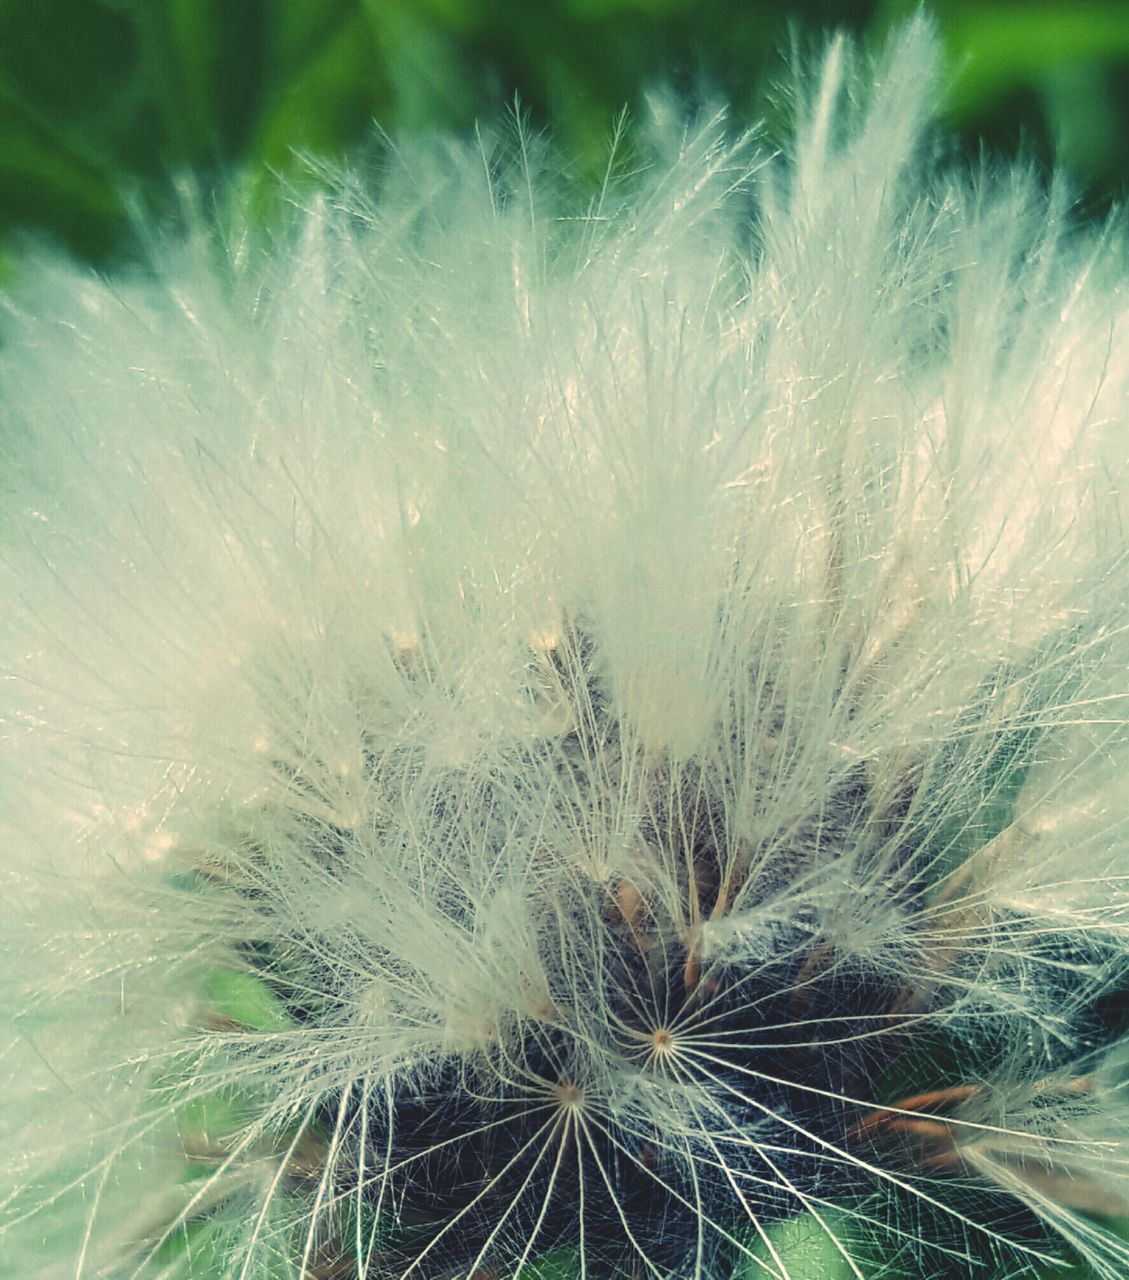 dandelion, growth, flower, dandelion seed, nature, fragility, freshness, plant, softness, close-up, uncultivated, beauty in nature, botany, wildflower, seed, flower head, no people, springtime, outdoors, day, soft focus, grass